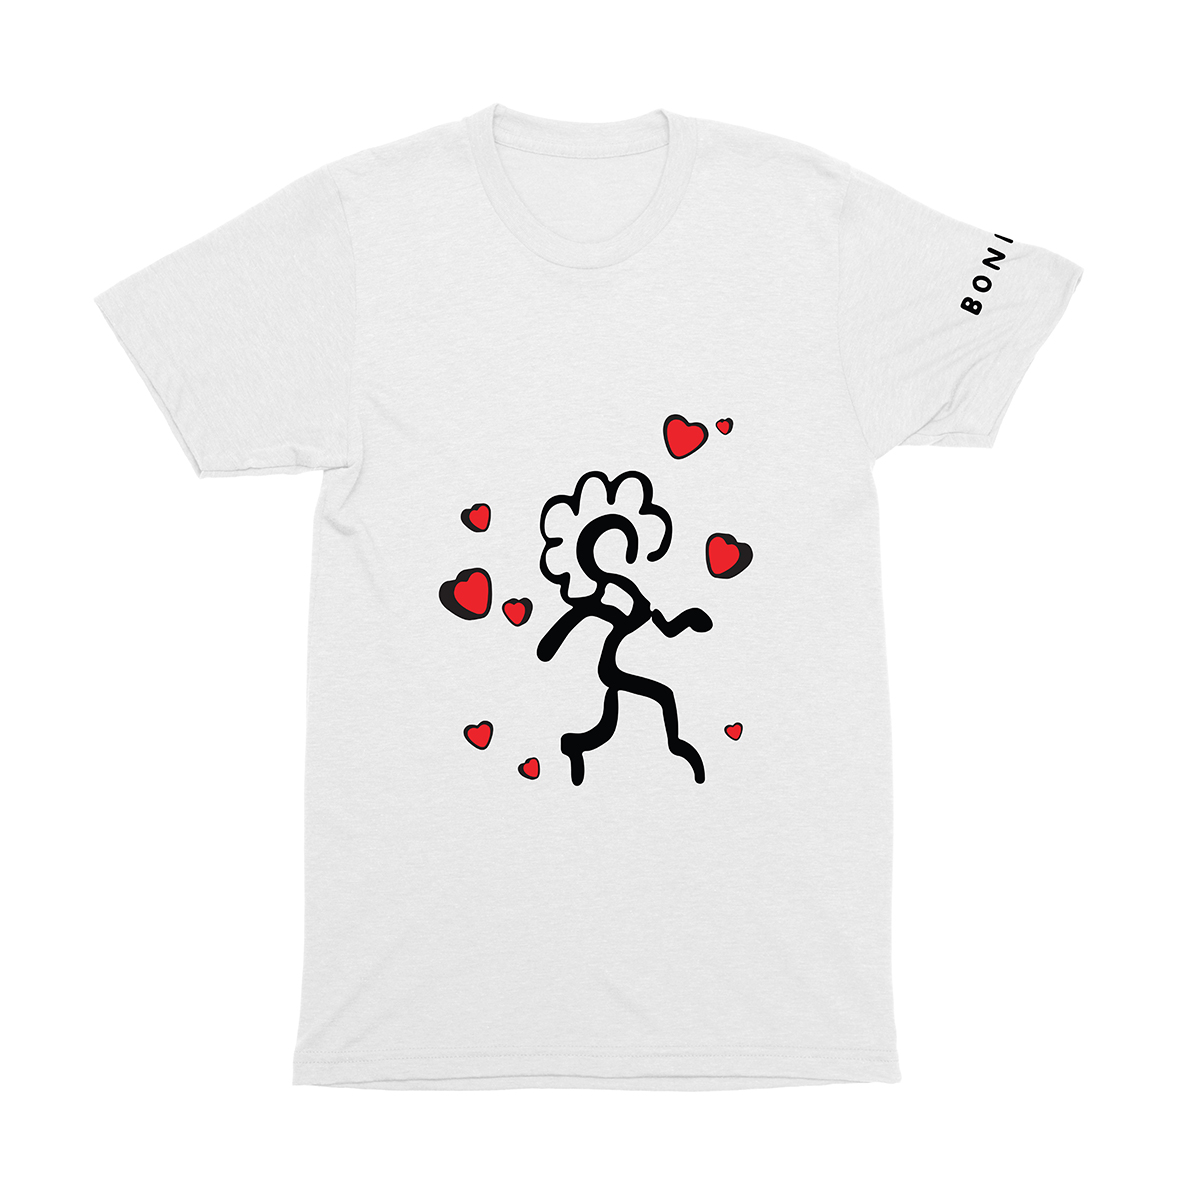 A Tribe Called Quest Lady Bonita V-Day T-shirt